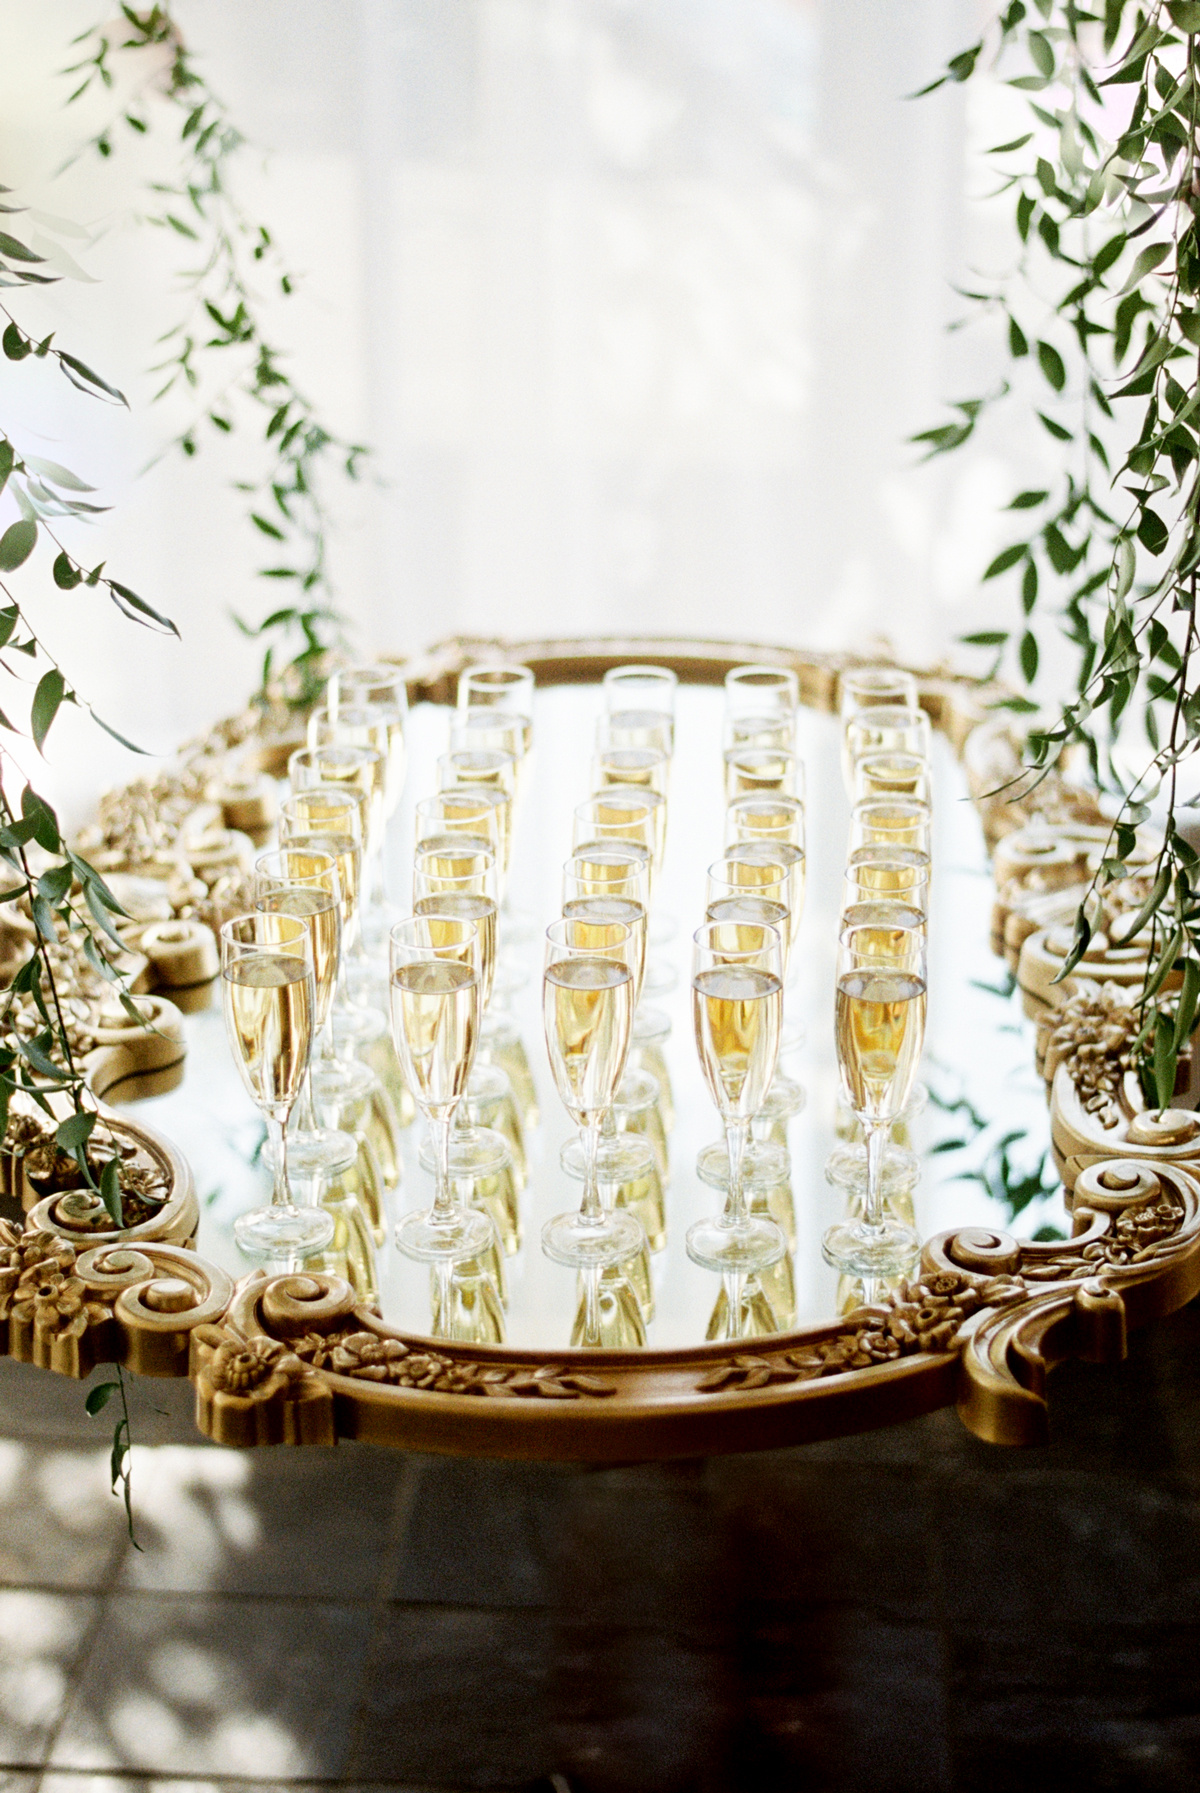 gold framed mirror serving tray with champagne glasses